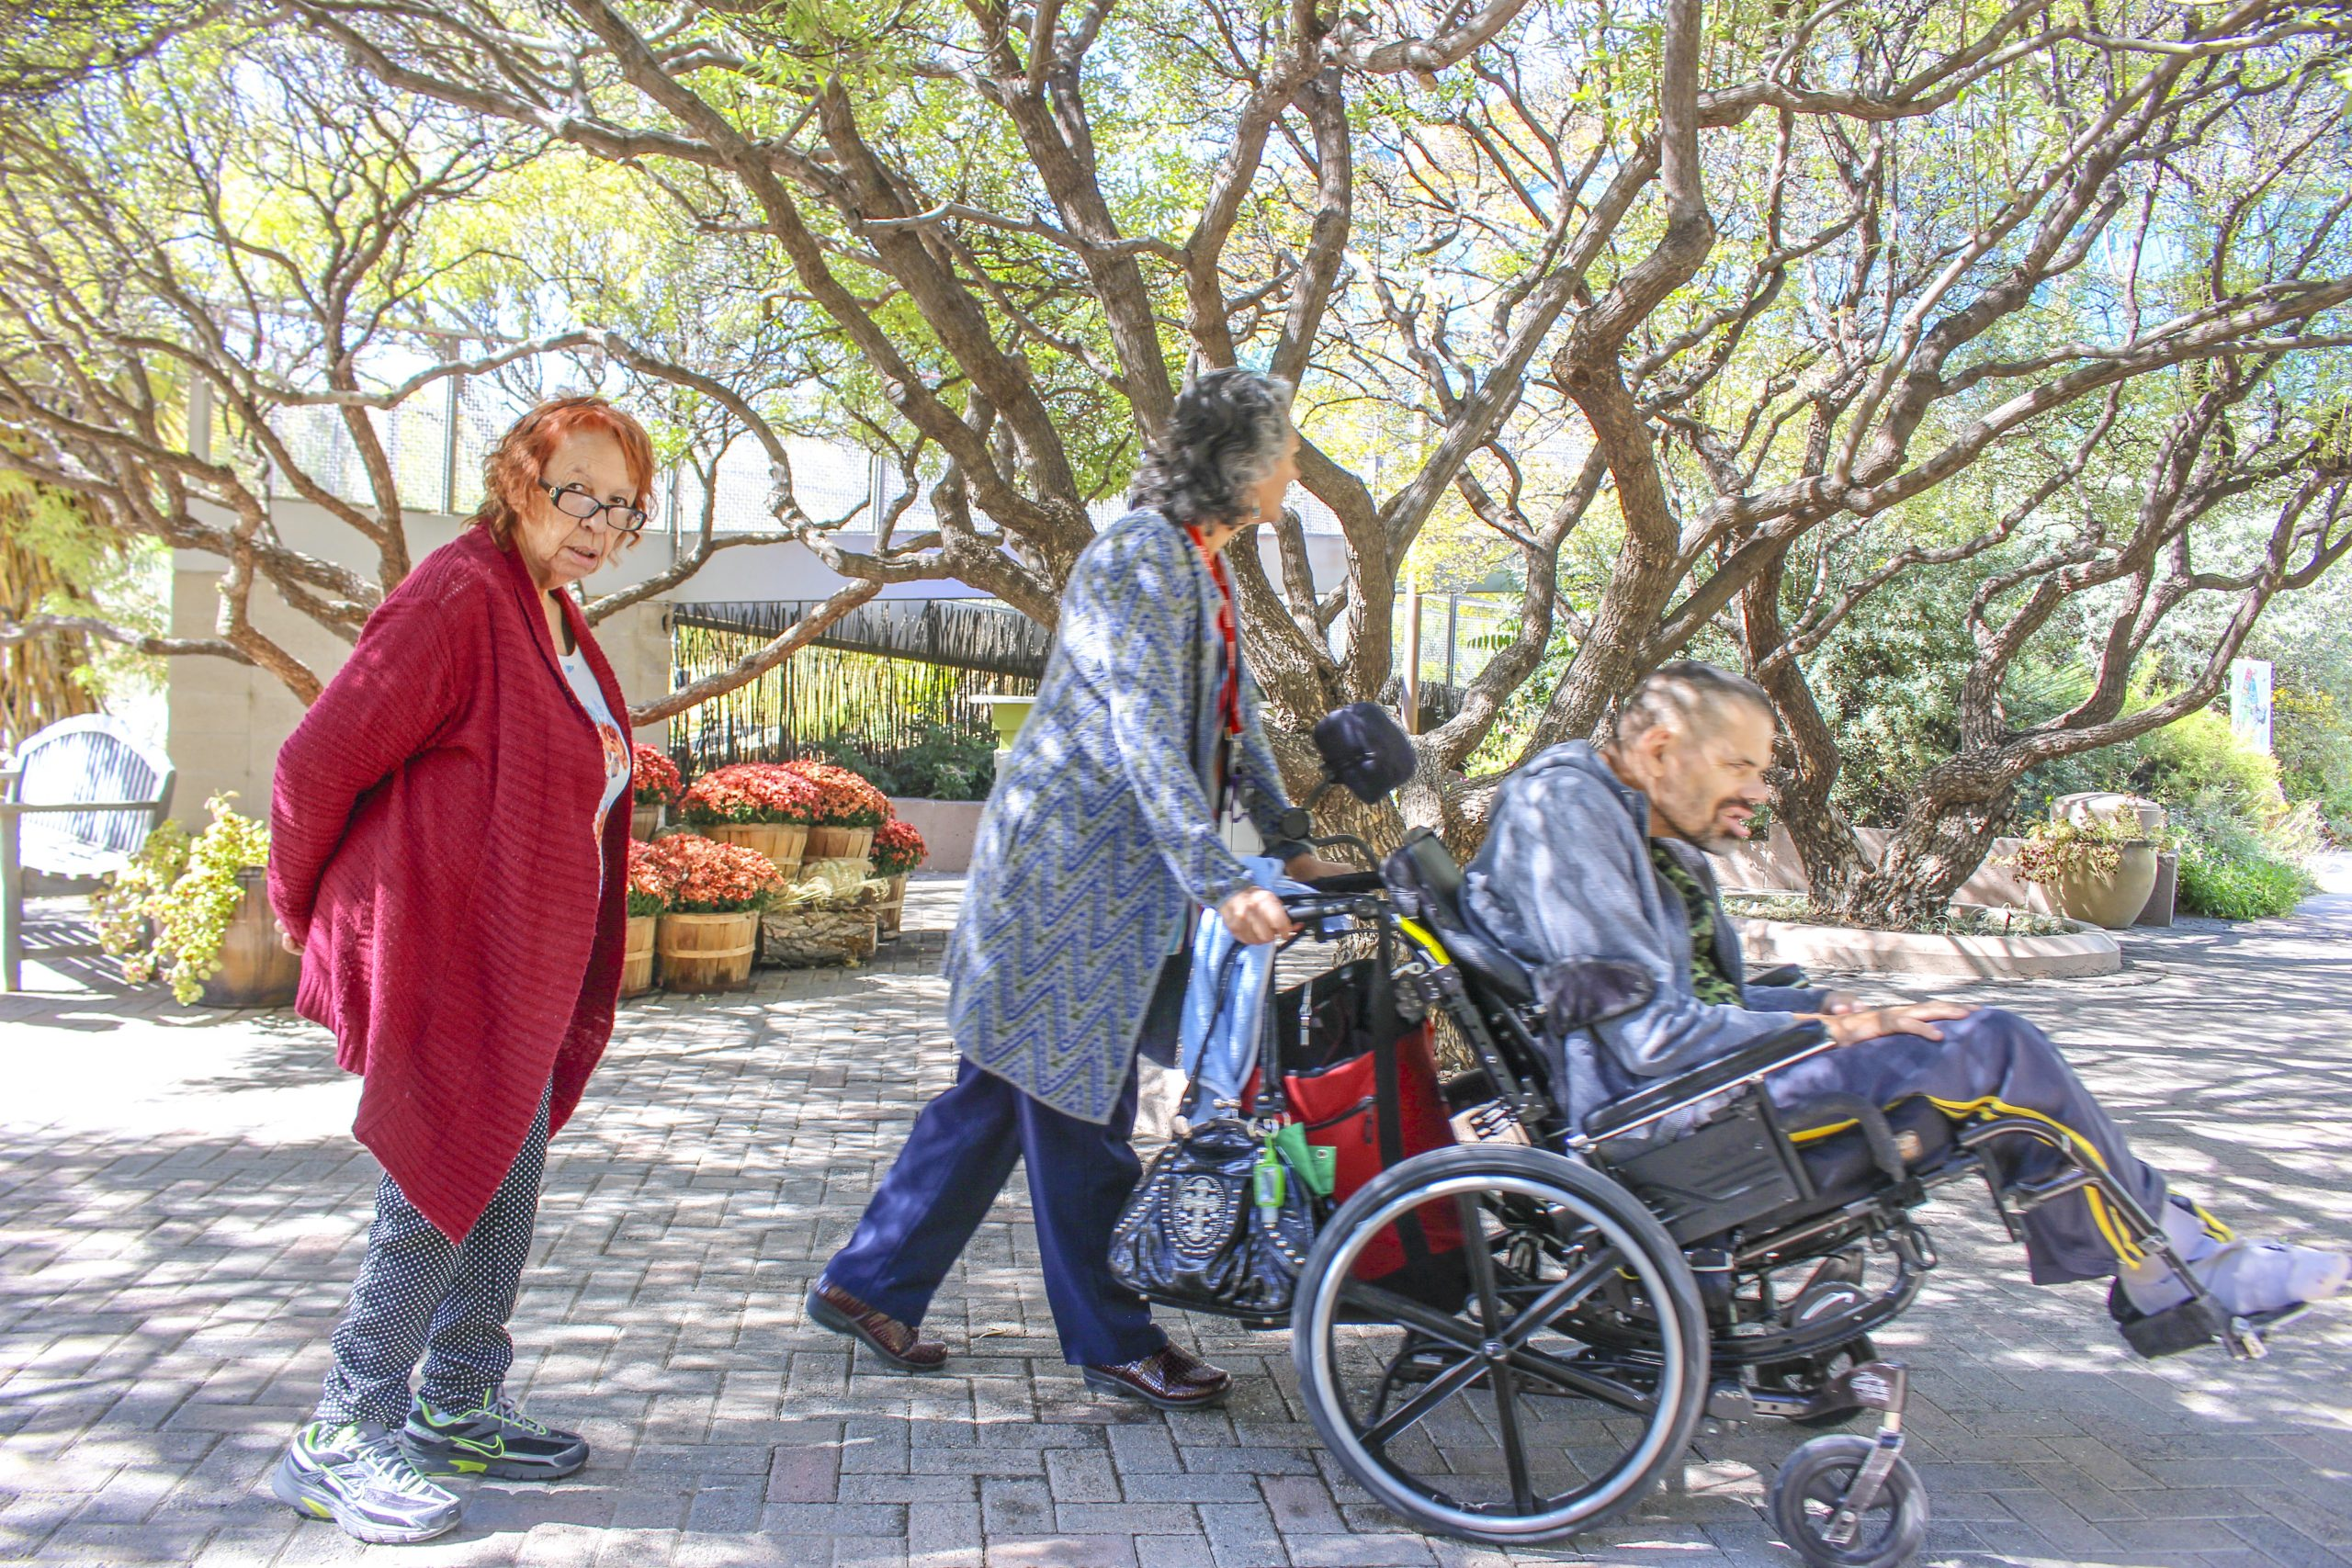 Three people are in the picture. On the right is a man in a wheelchair being pushed by a woman who is a direct support professional. Behind the direct support professional is a female client looking at the camera. They are in the shade under large trees outside. It is sunny and the trees are green.